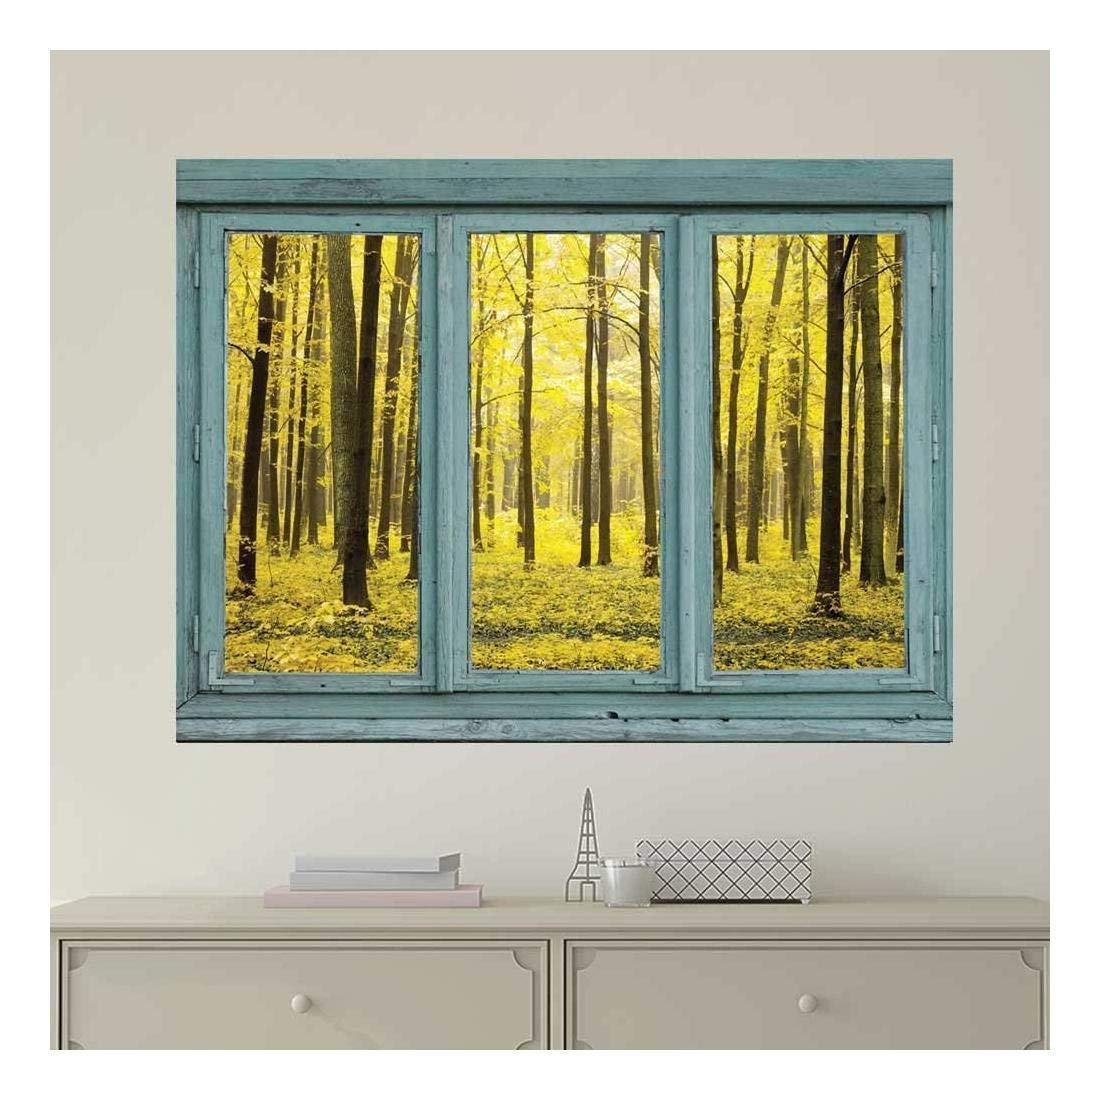 wall26 Vintage Teal Window Looking Out Into a Yellow Forest - Wall Mural, Removable Sticker, Home Decor - 24x32 inches